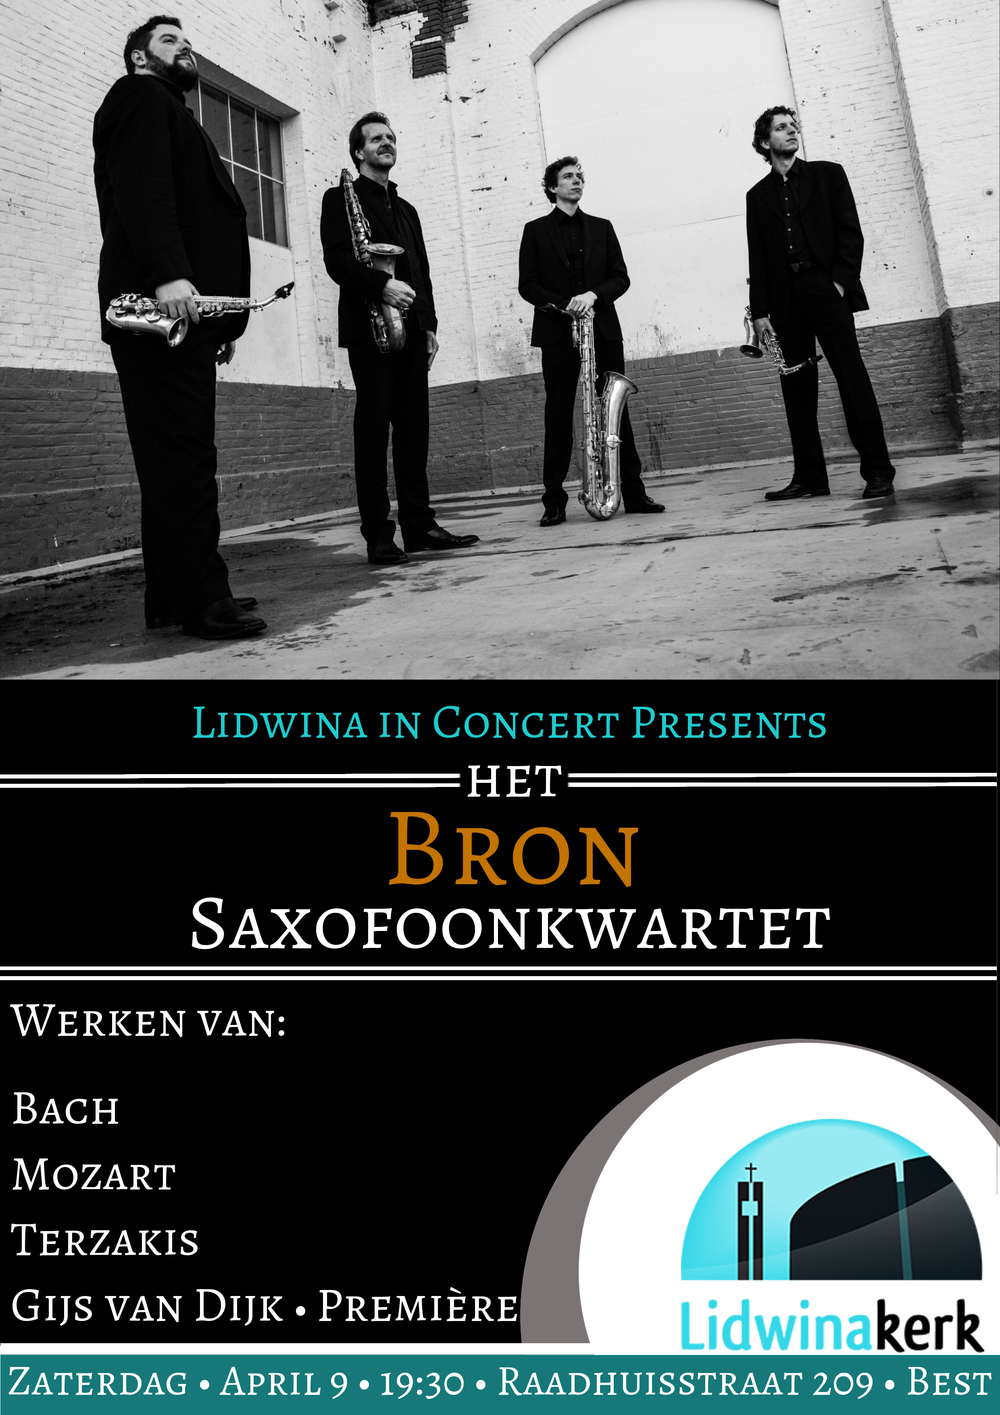 Lidwinakerk - Bron Saxophone Quartet - April 9 - Dutch.jpg